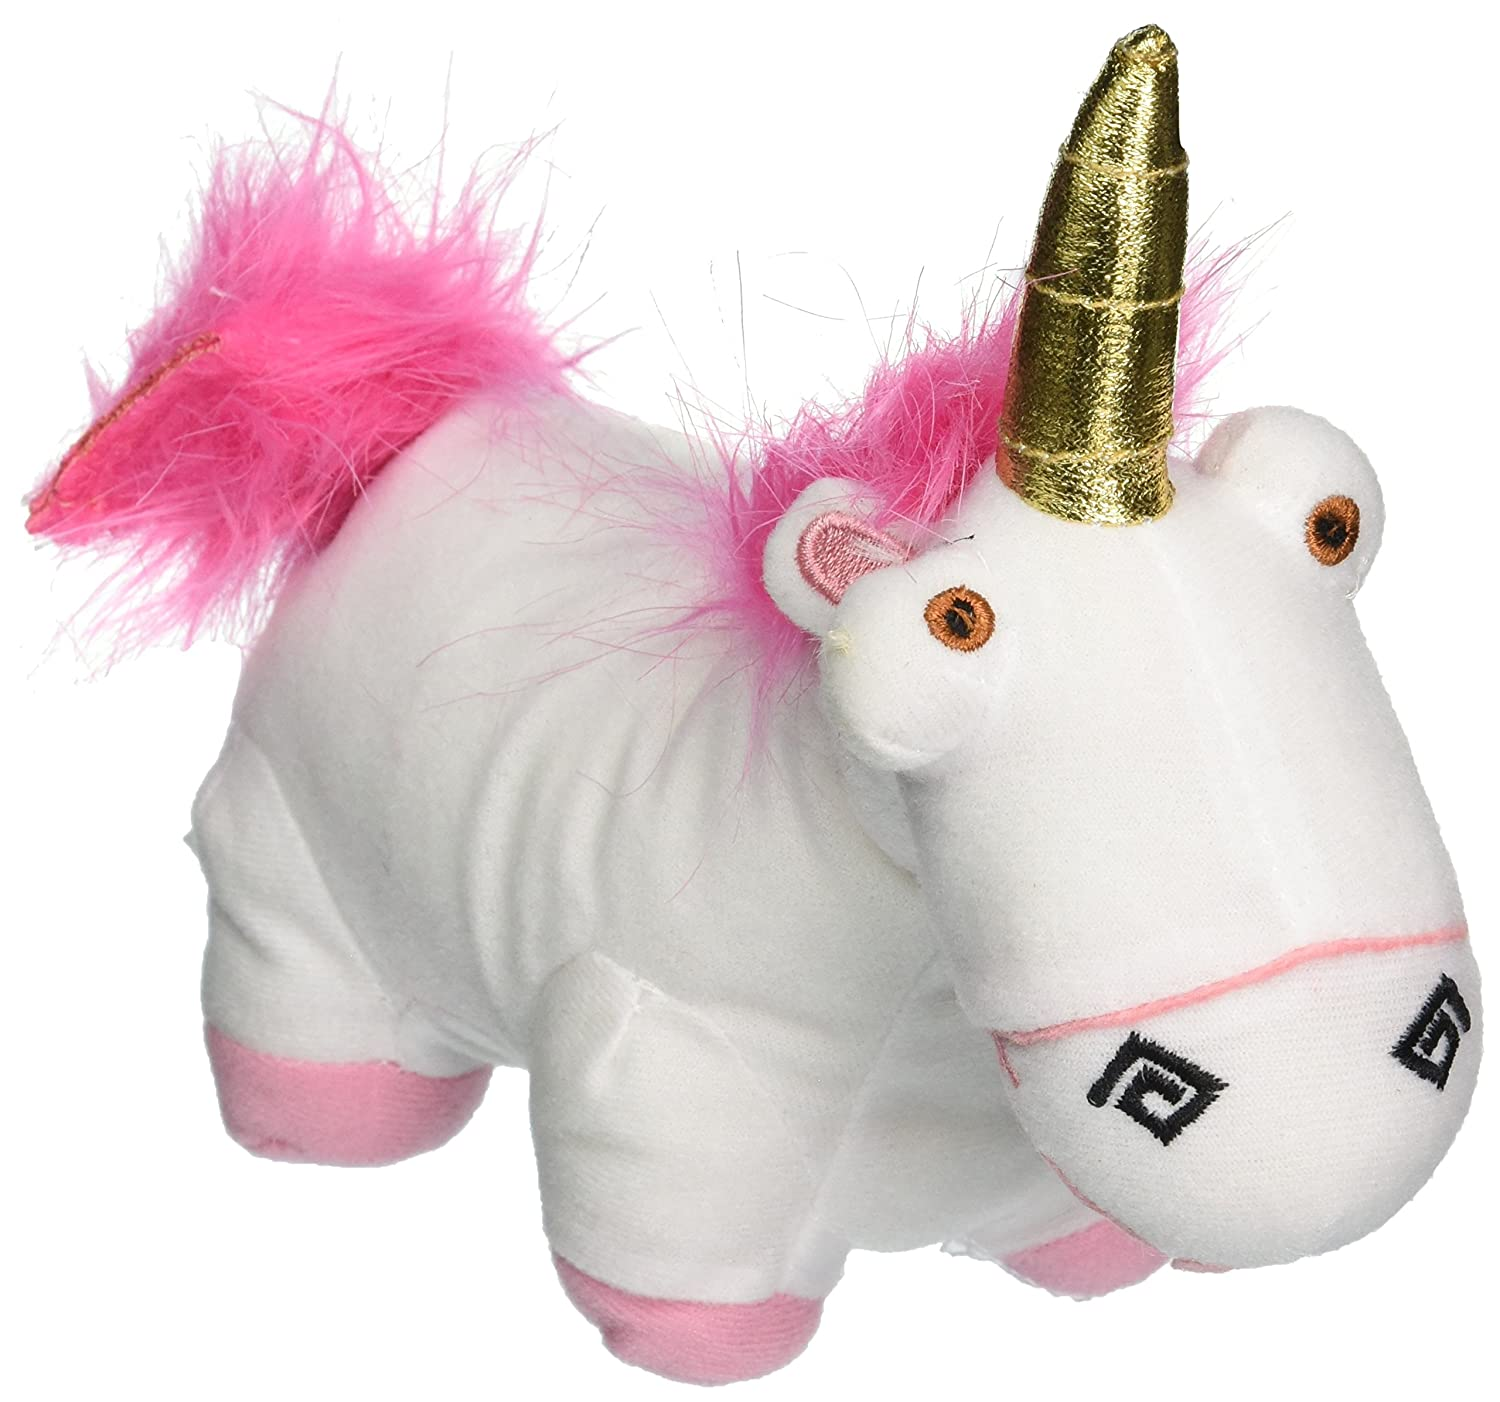 Despicable Me - 8.5 Unicorn Plush Doll